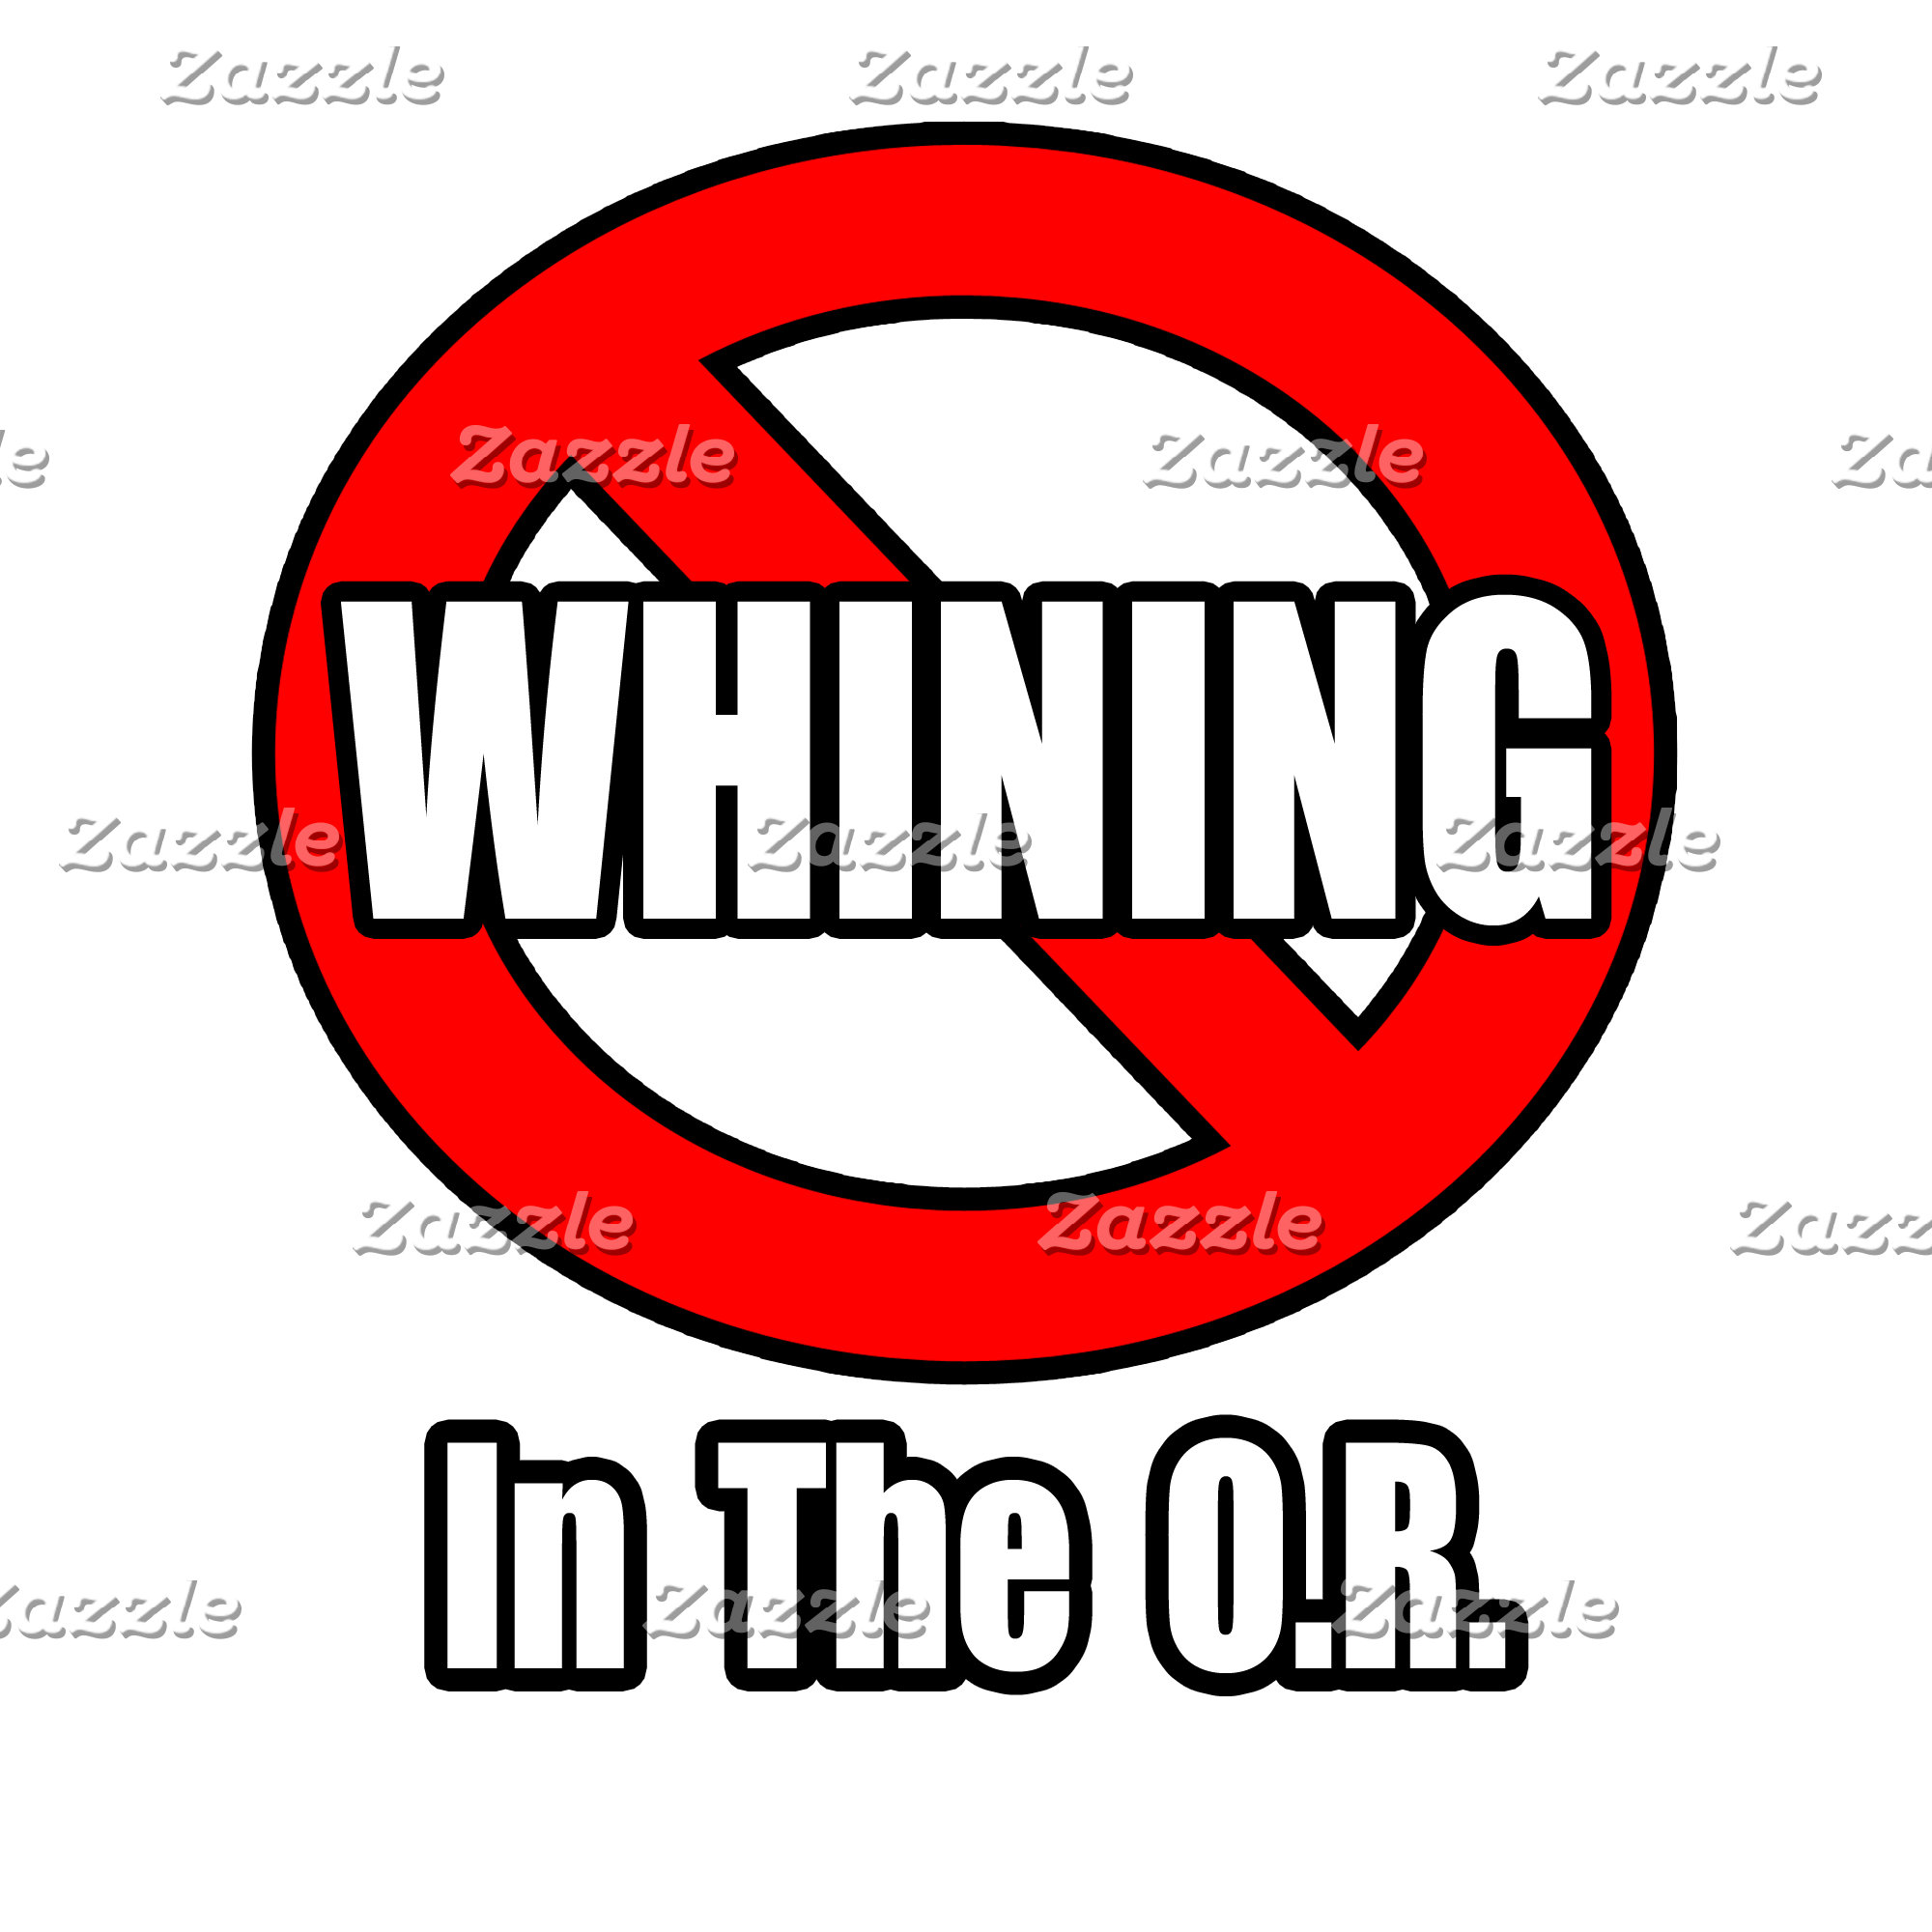 No Whining In The O.R.